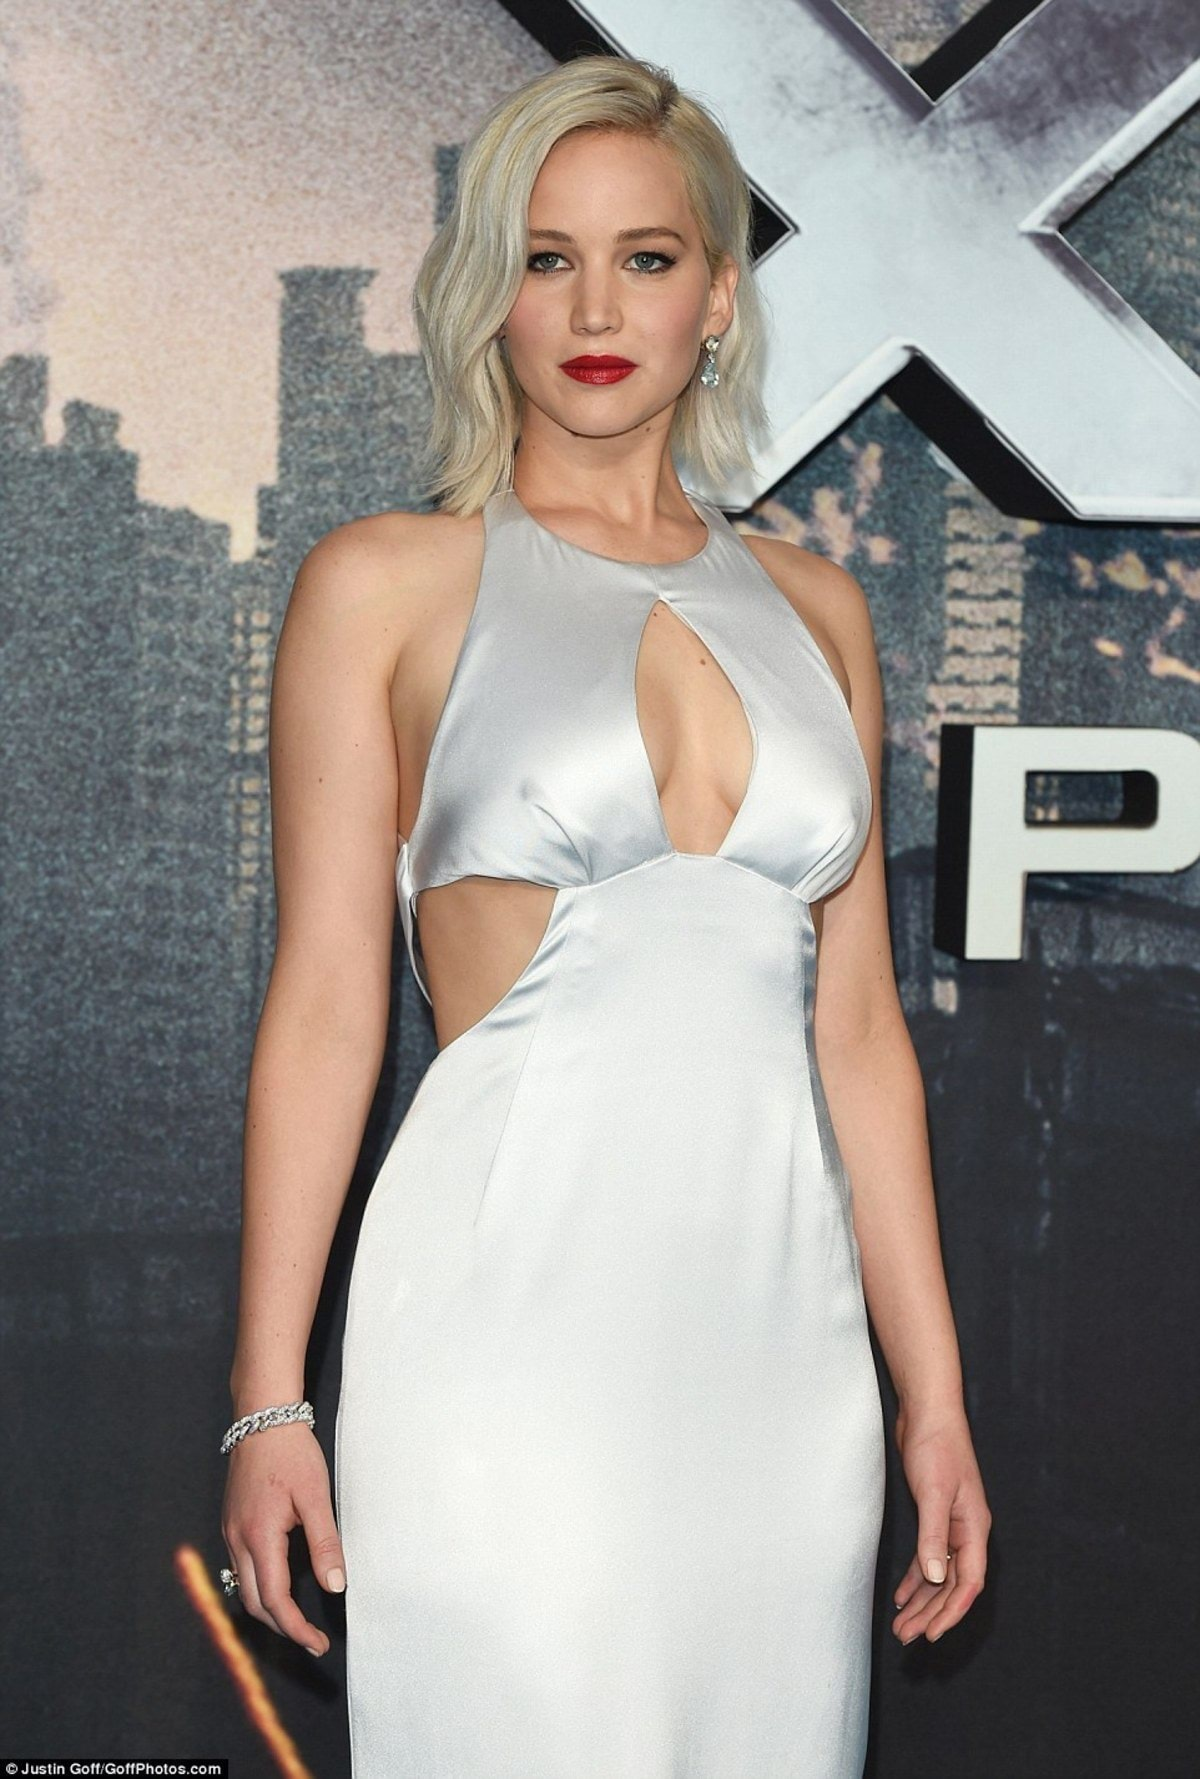 33FCBA3900000578-3581535-Standing_tall_Jennifer_Lawrence_looked_incredible_as_she_turned_-a-177_1462822058824